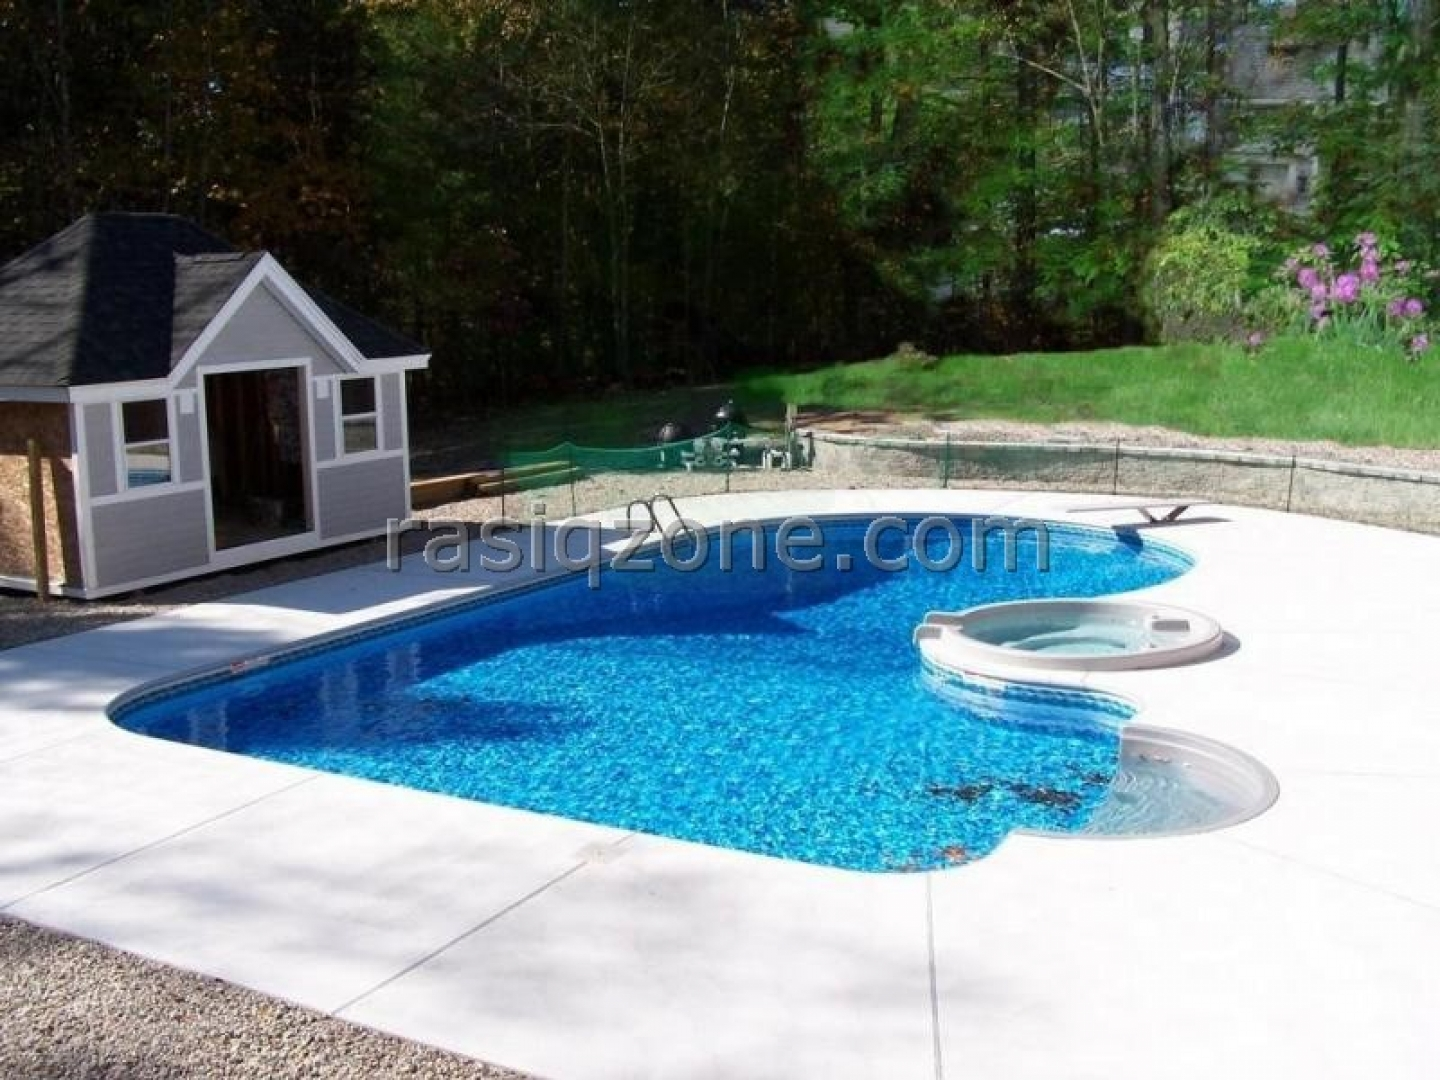 Backyard ideas with pools large and beautiful photos for Backyard pool design ideas